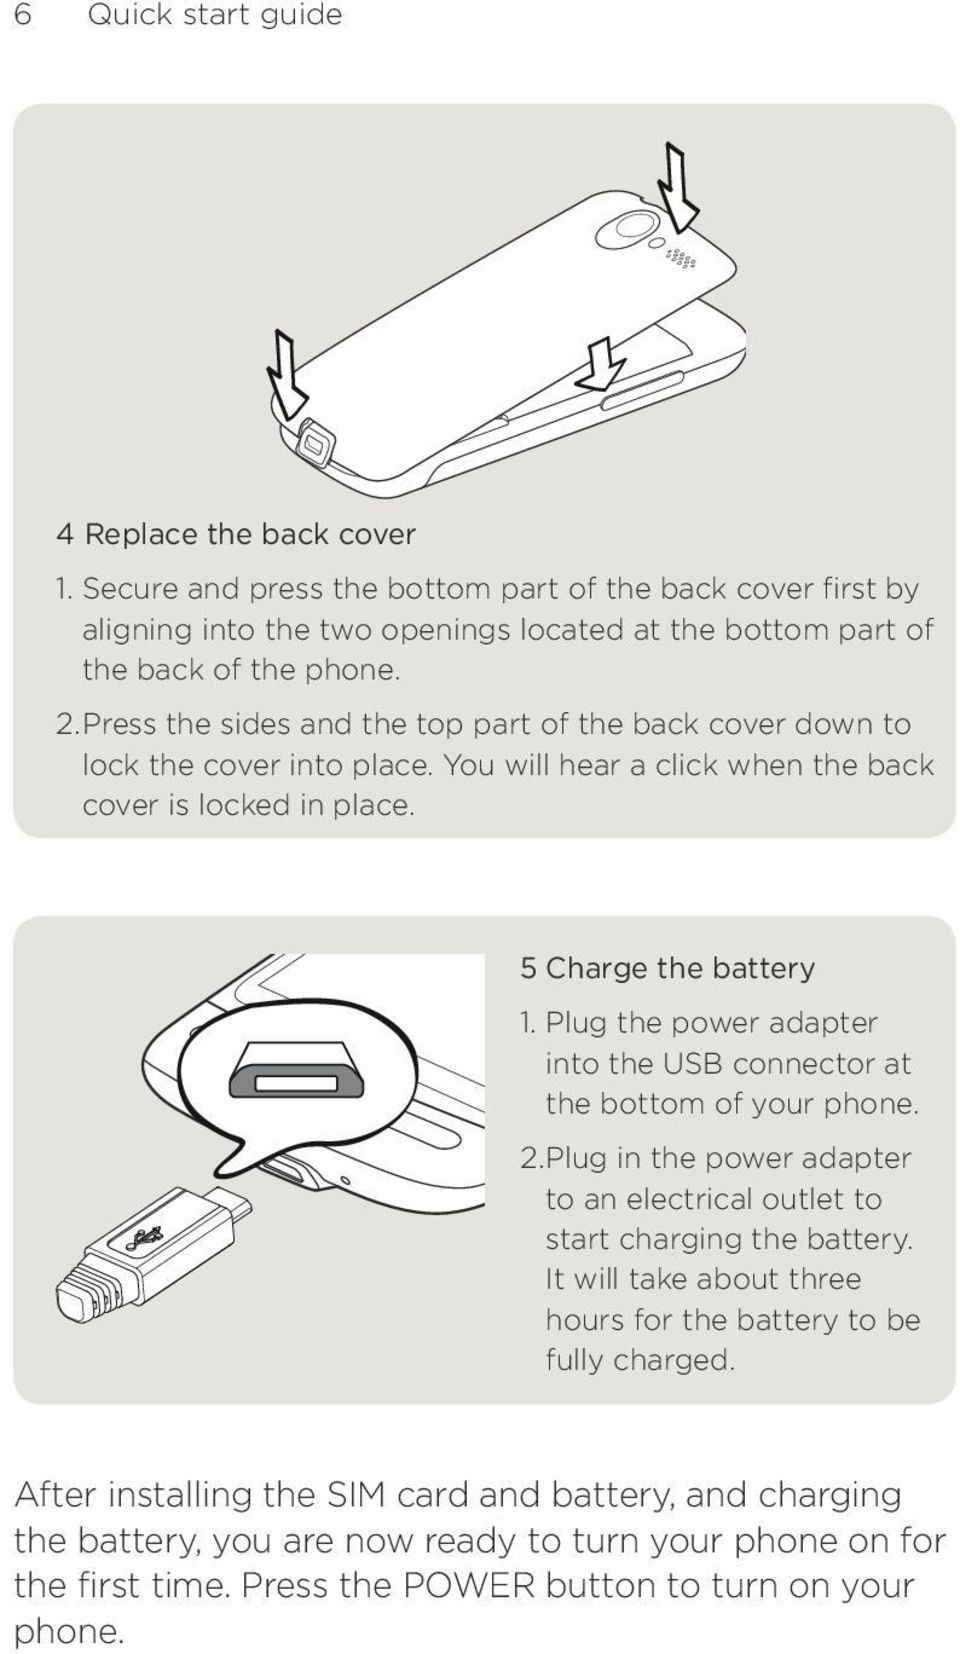 Plug the power adapter into the USB connector at the bottom of your phone.. Plug in the power adapter to an electrical outlet to start charging the battery.